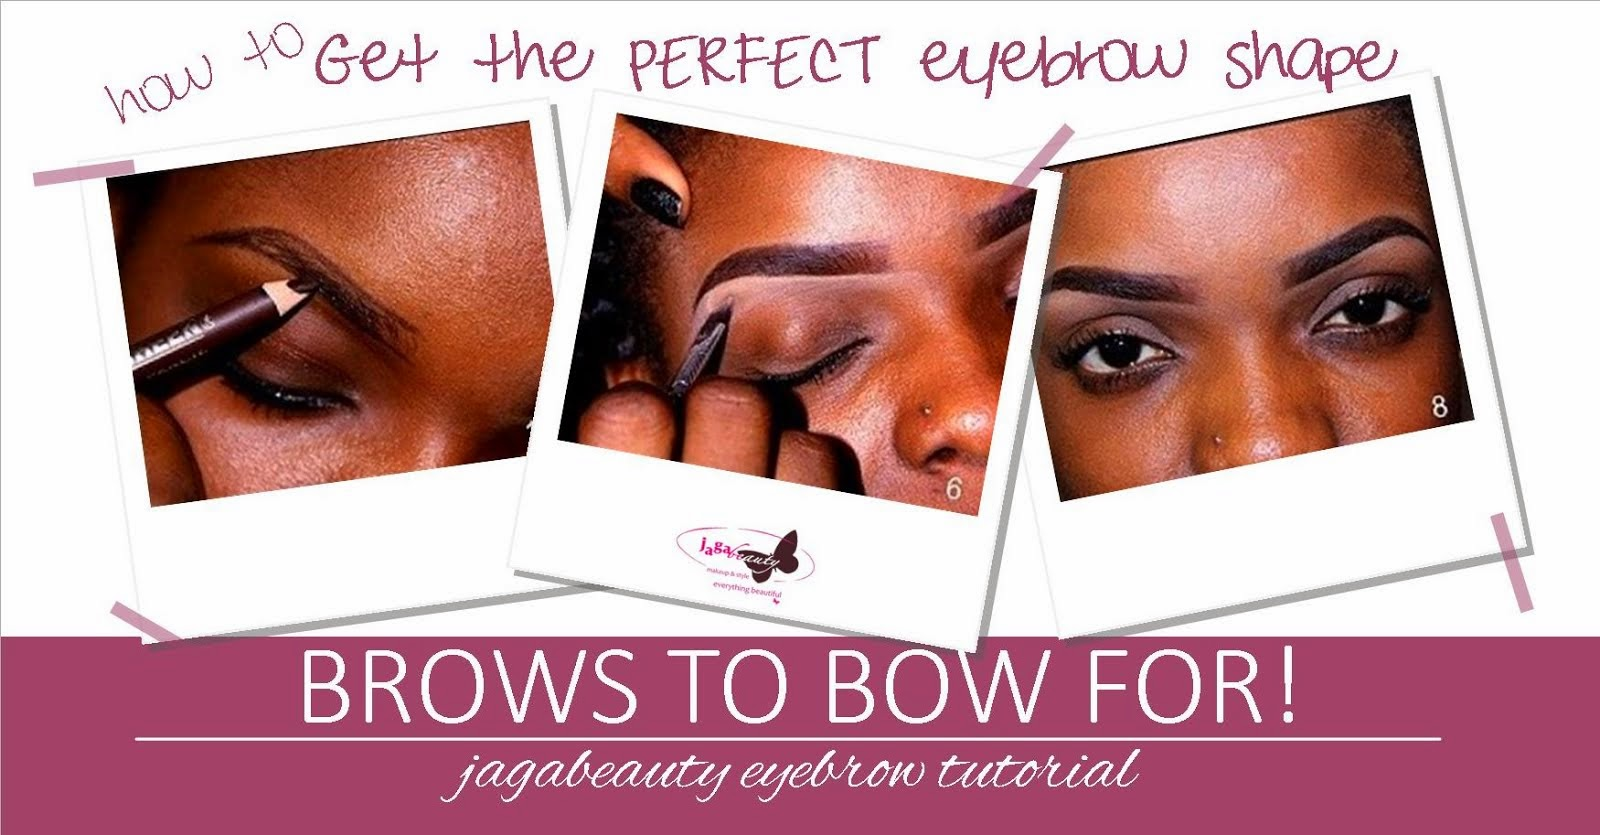 Brows to Bow for!